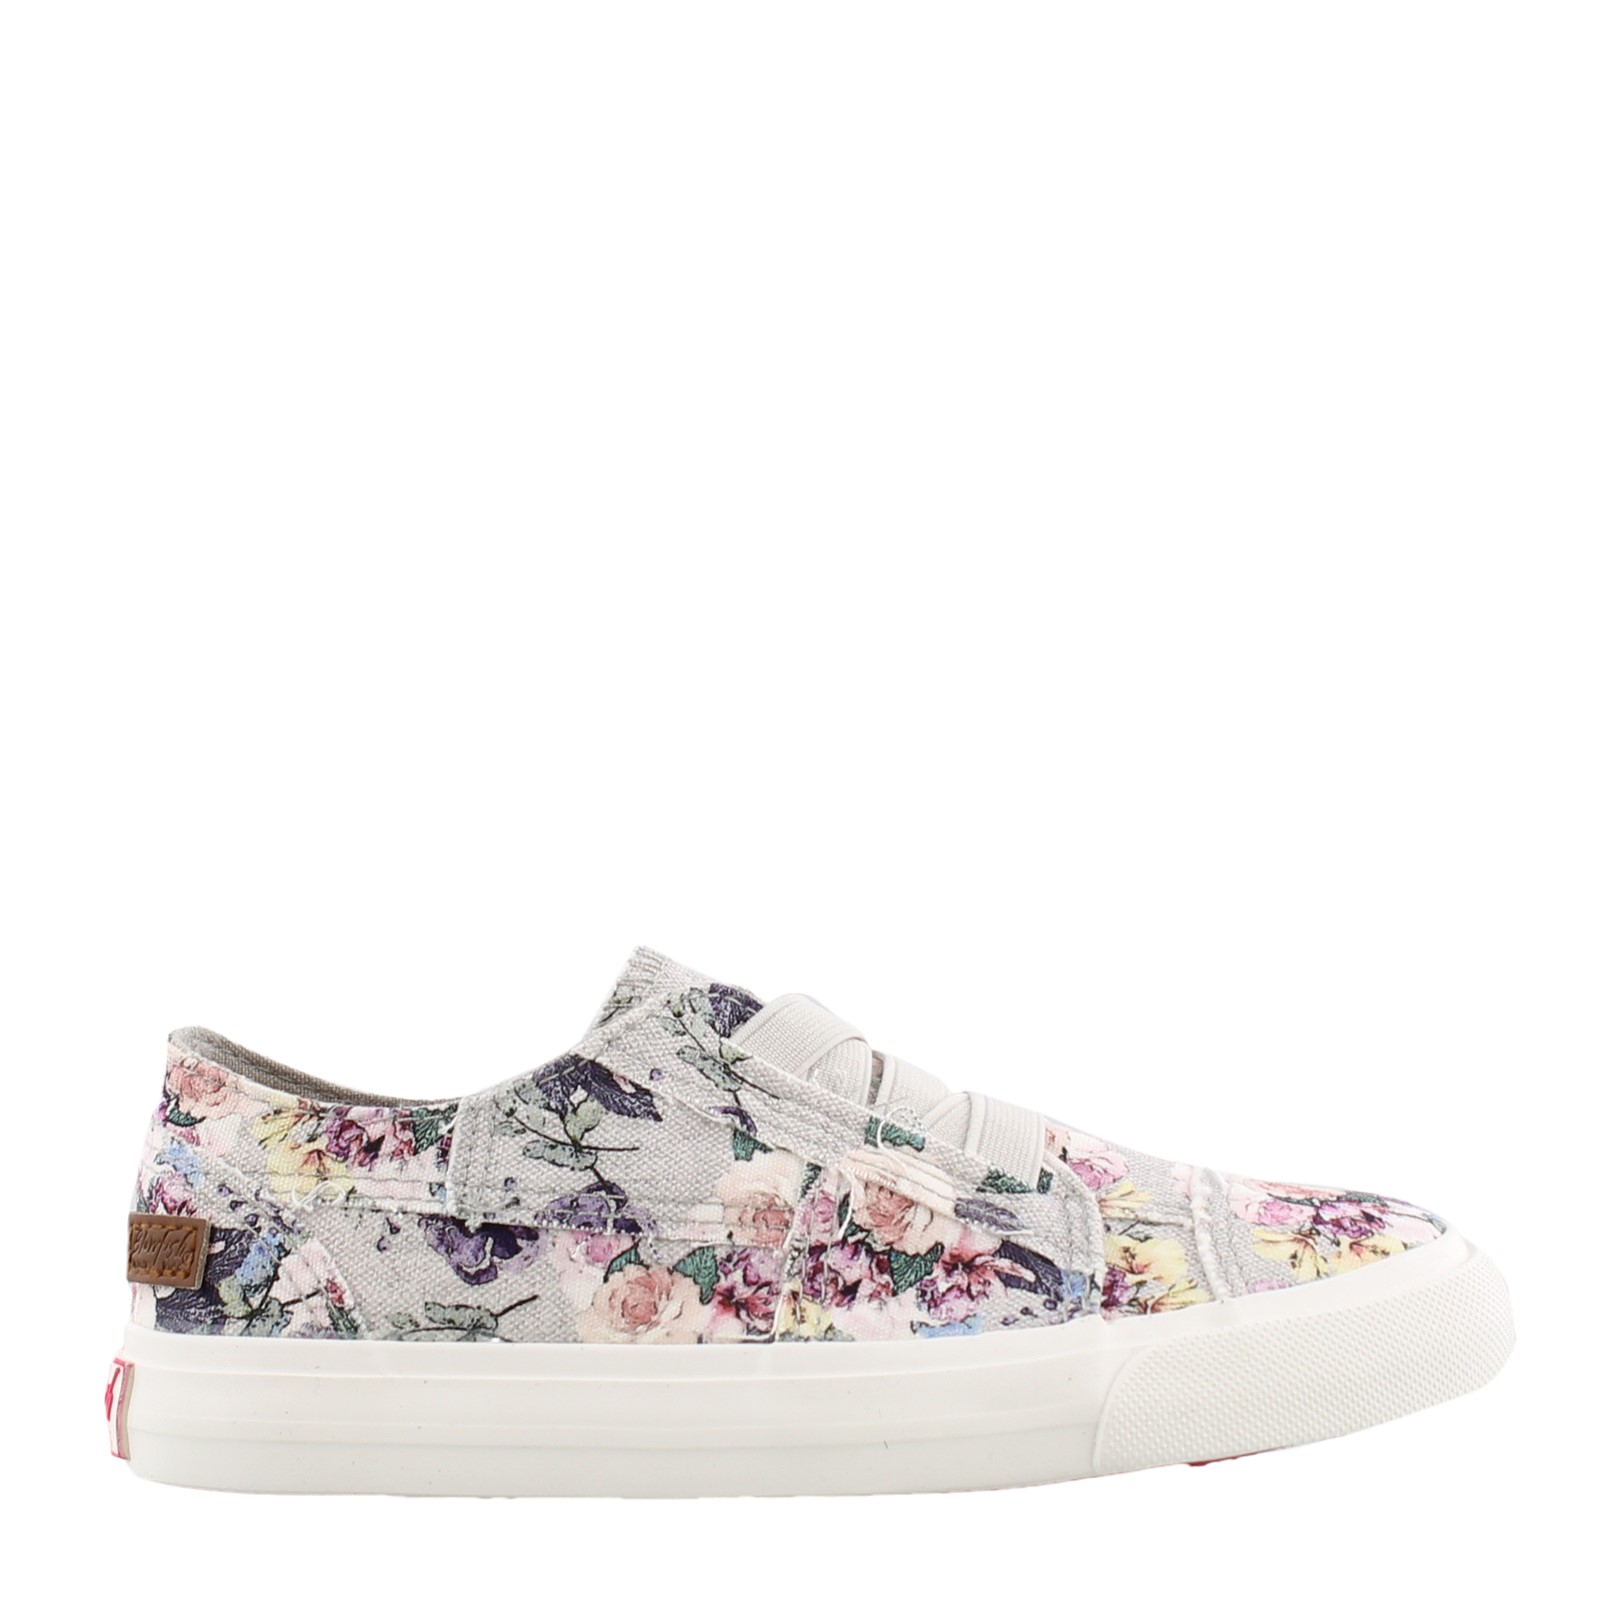 Girl's Blowfish Kids, Marley Sneaker - Little Kid